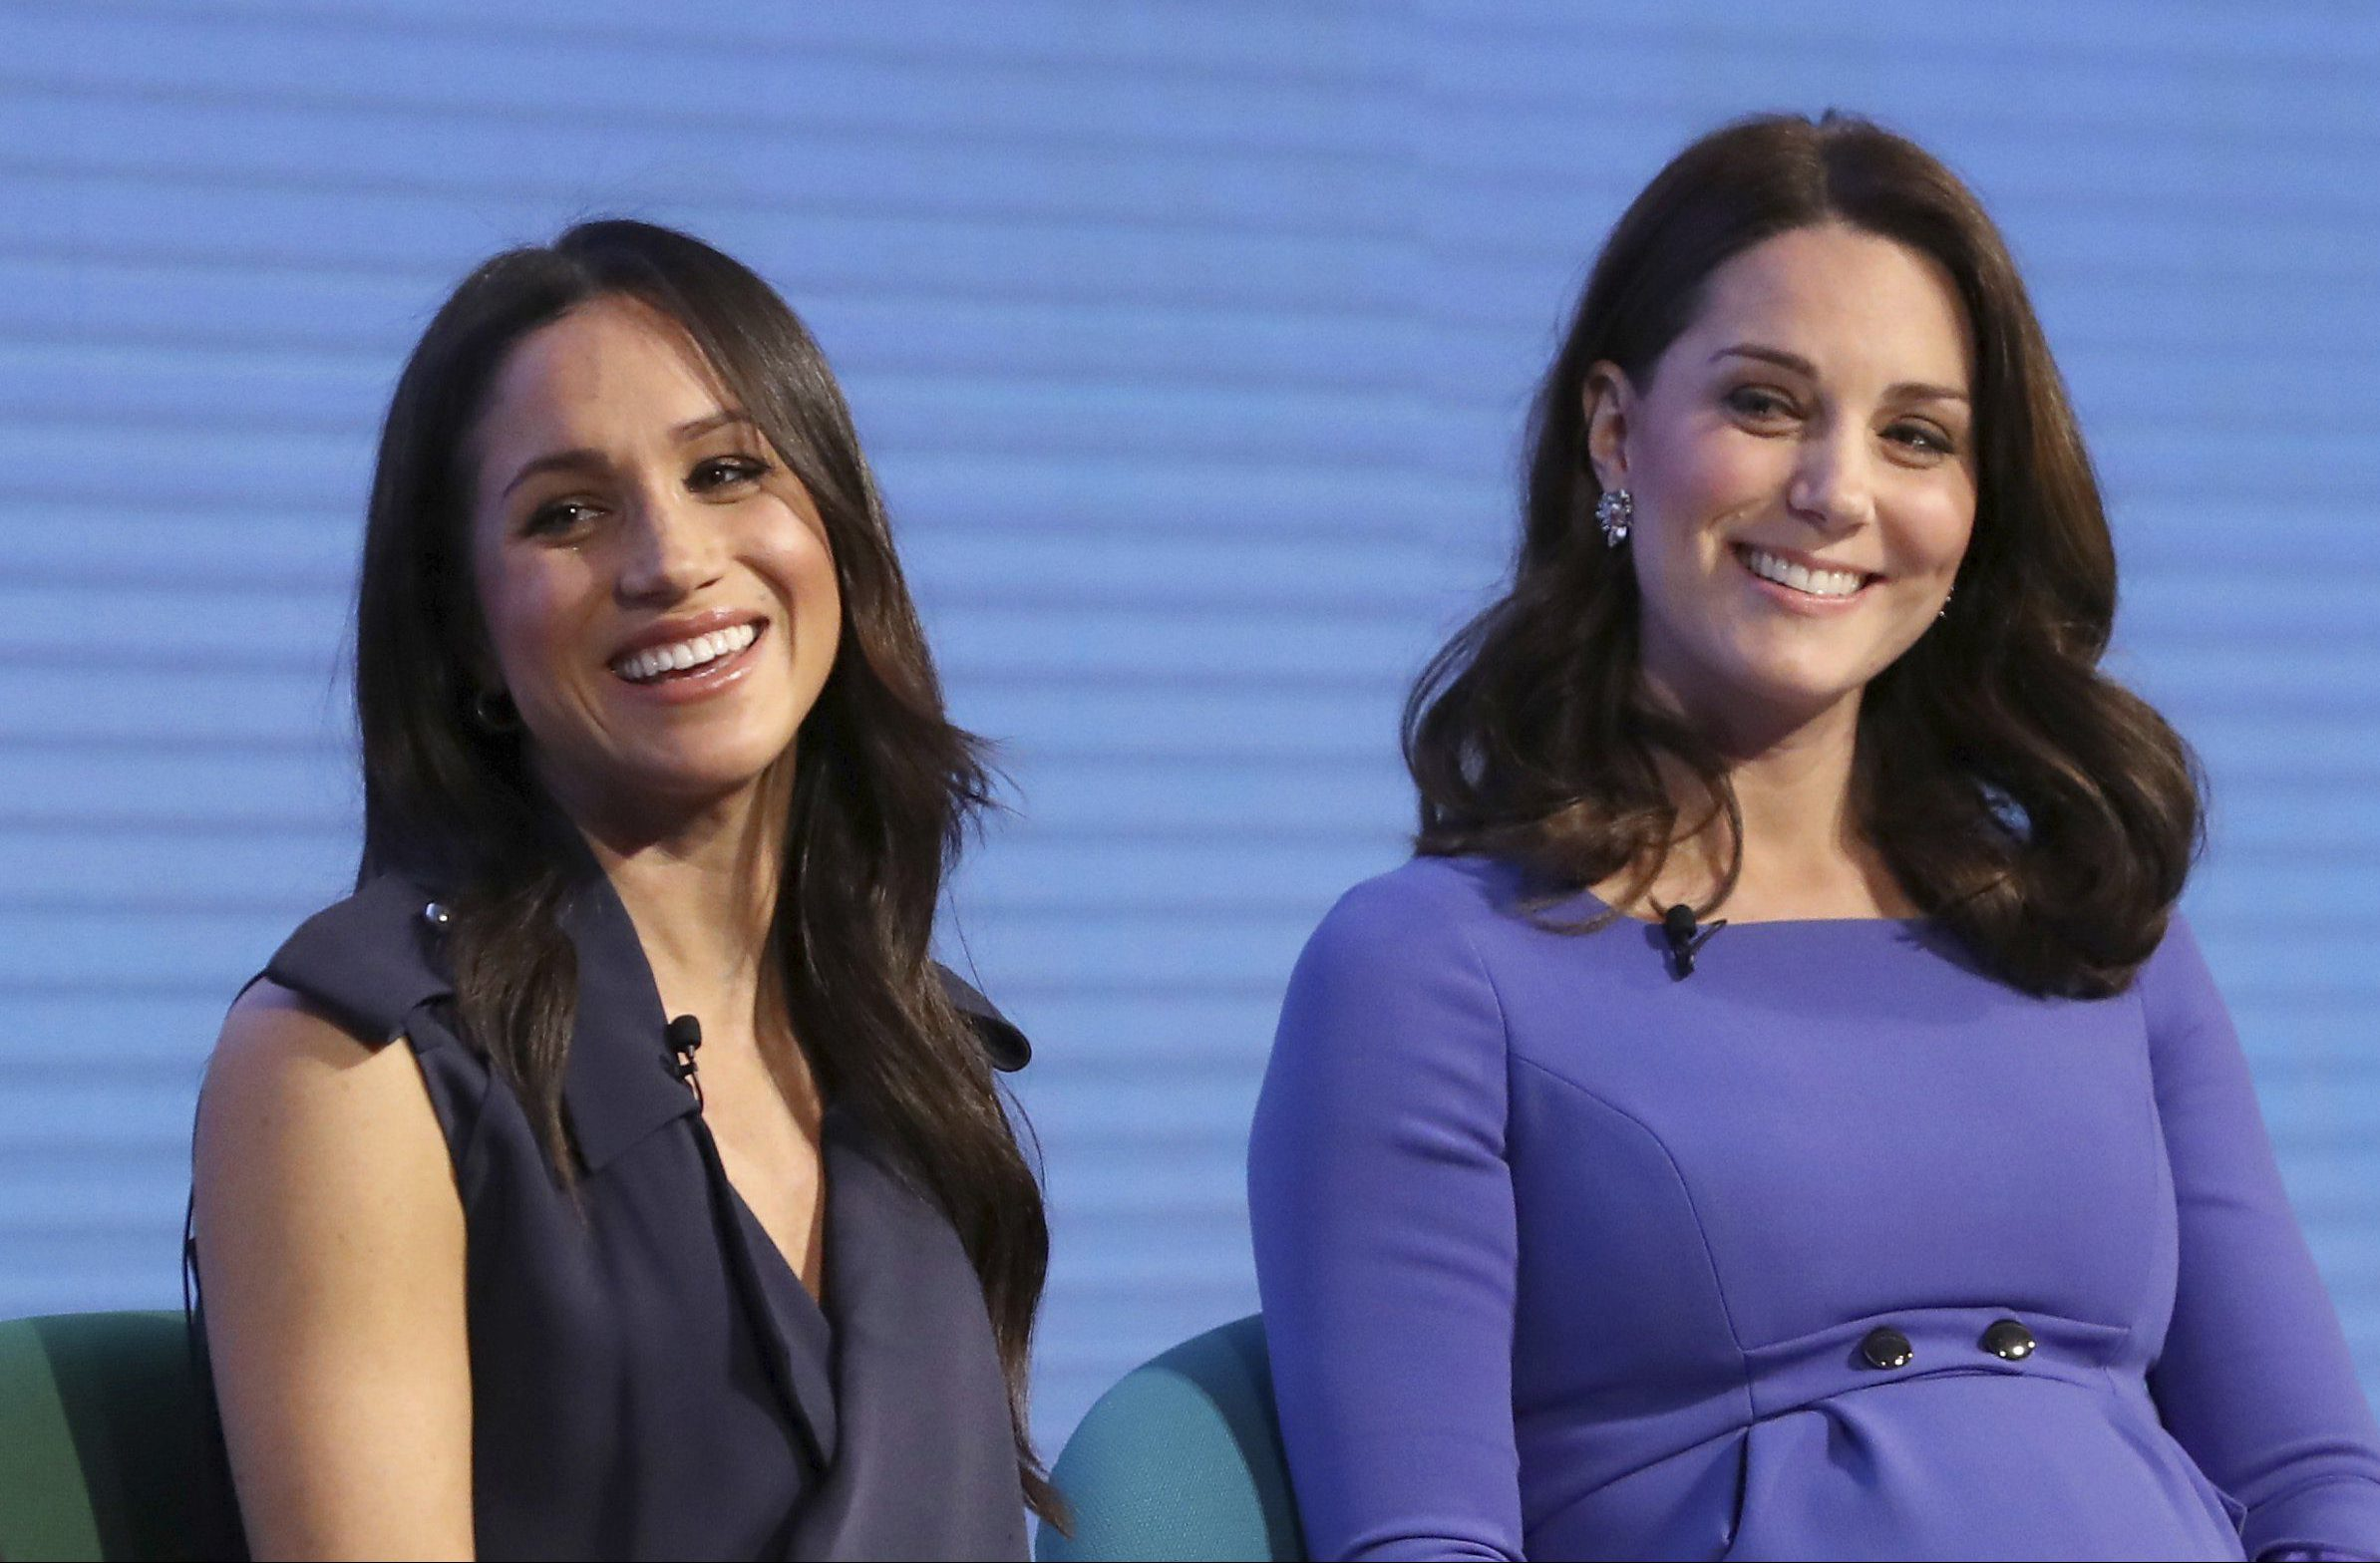 Britain's Kate, Duchess of Cambridge, right, and Meghan Markle attend the first annual Royal Foundation Forum in London, Wednesday Feb. 28, 2018. Under the theme 'Making a Difference Together', the event will showcase the programmes run or initiated by The Royal Foundation. (Chris Jackson/Pool via AP)